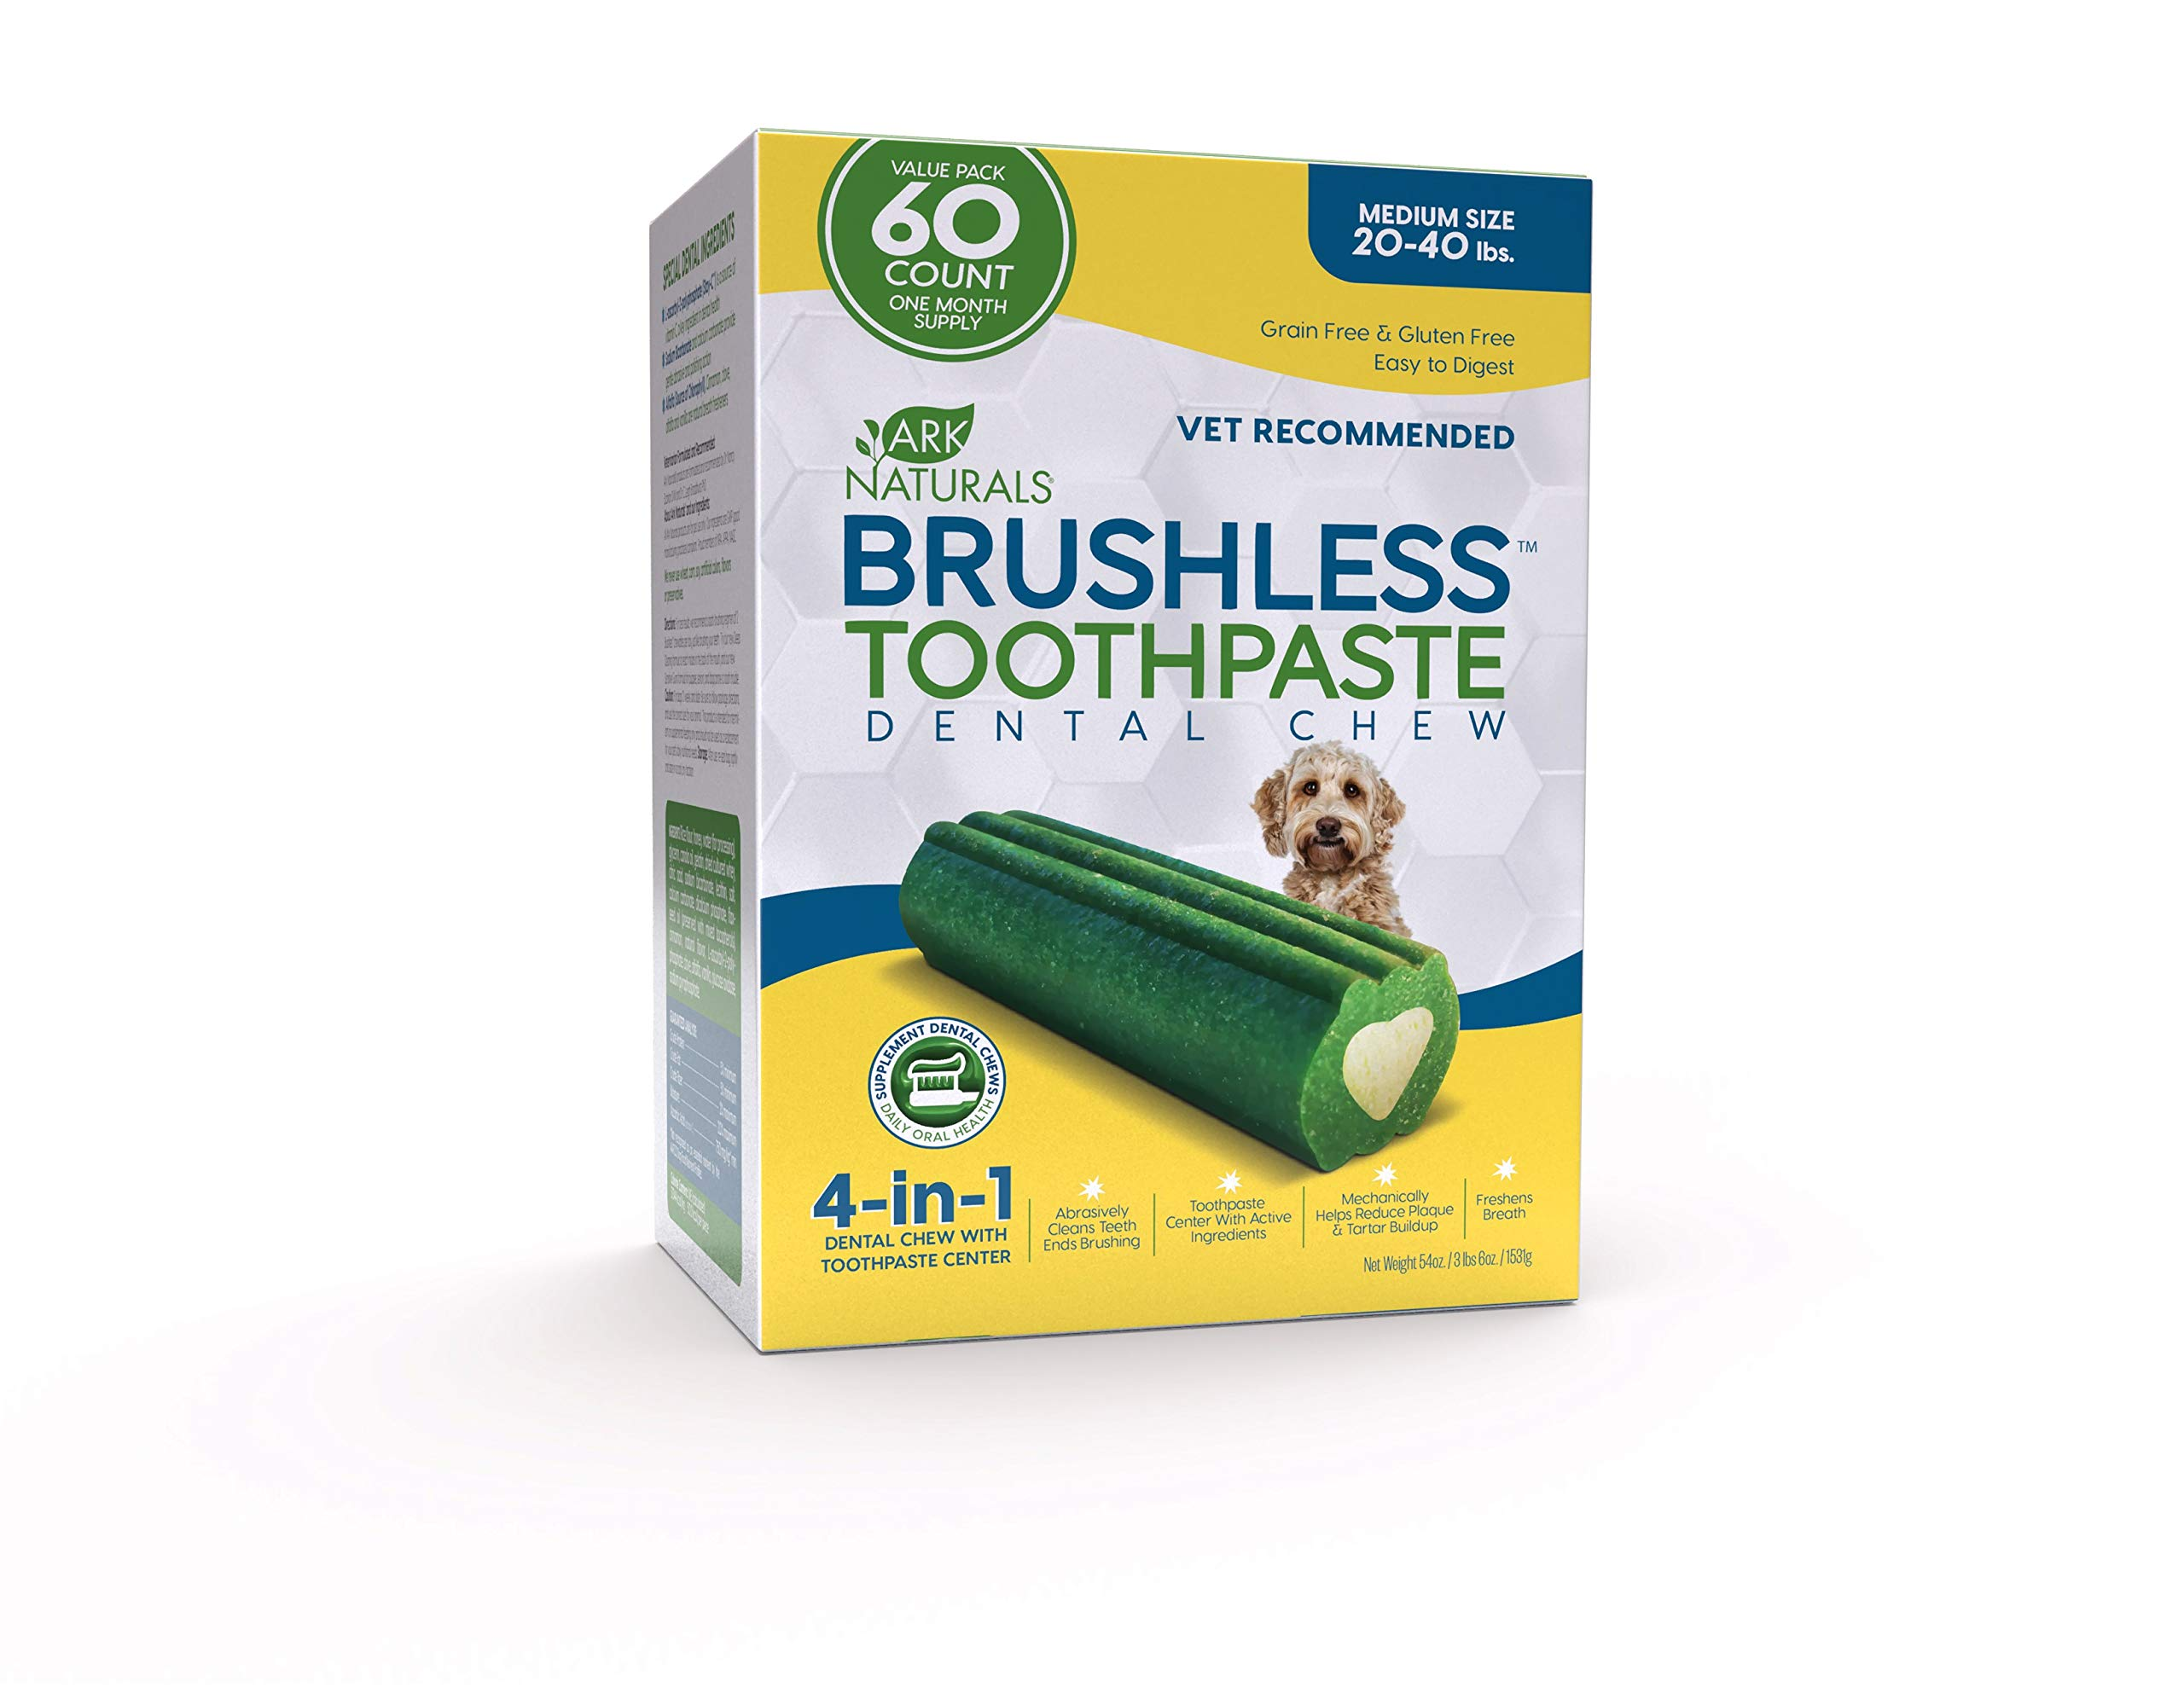 ARK NATURALS Brushless Toothpaste Value Pack, Vet Recommended Dental Chew for Medium Breeds, Plaque, Tartar & Bacteria Control, Freshens Breath, One Month Supply (60Count)